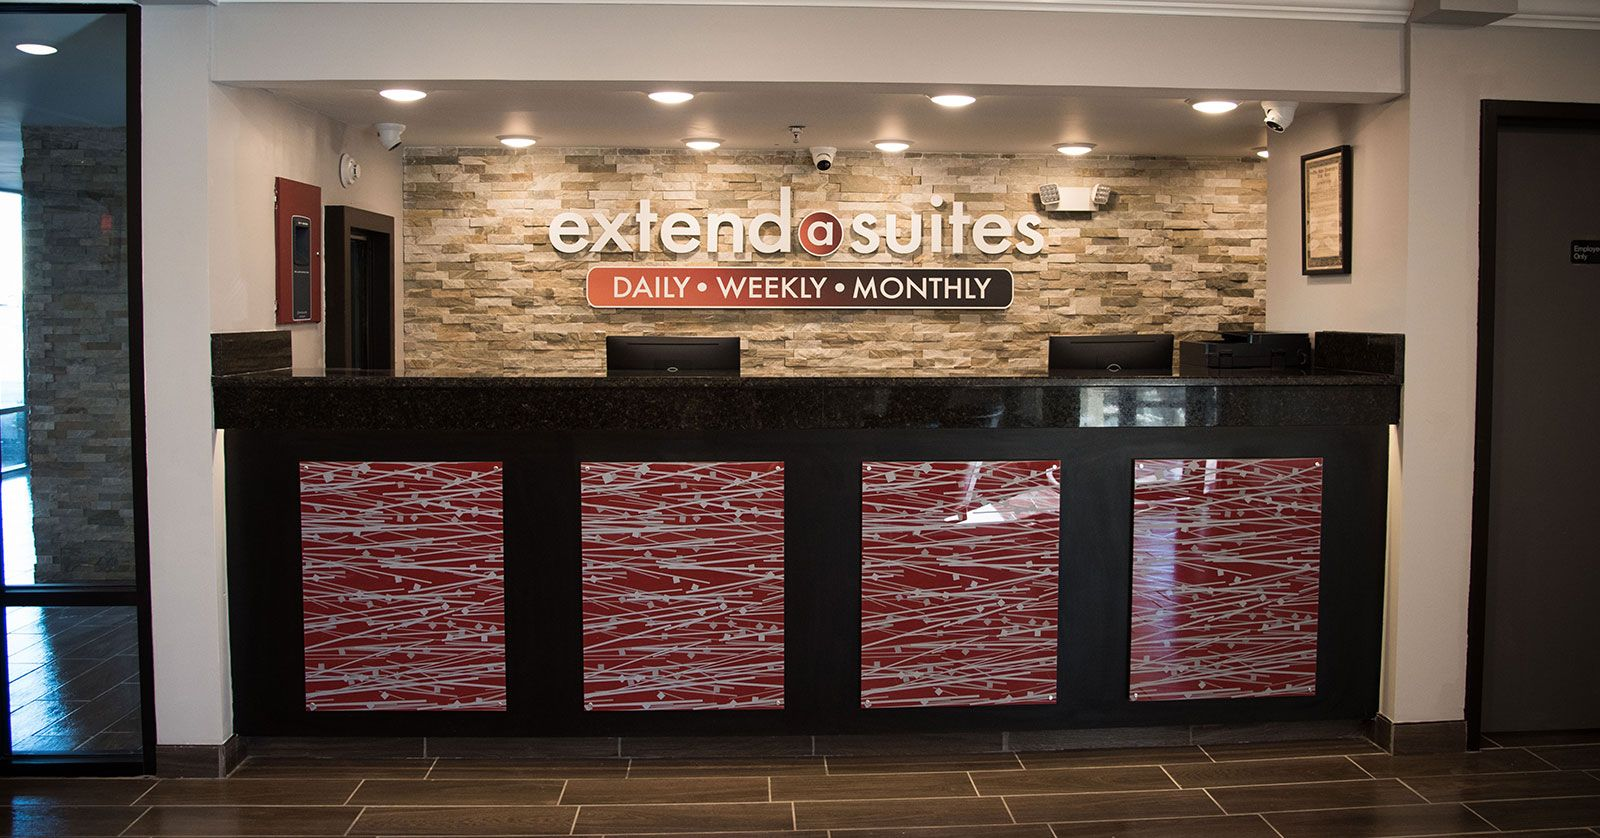 Extend-a-Suites - Comfortable & Convenient Long-Term Hotels